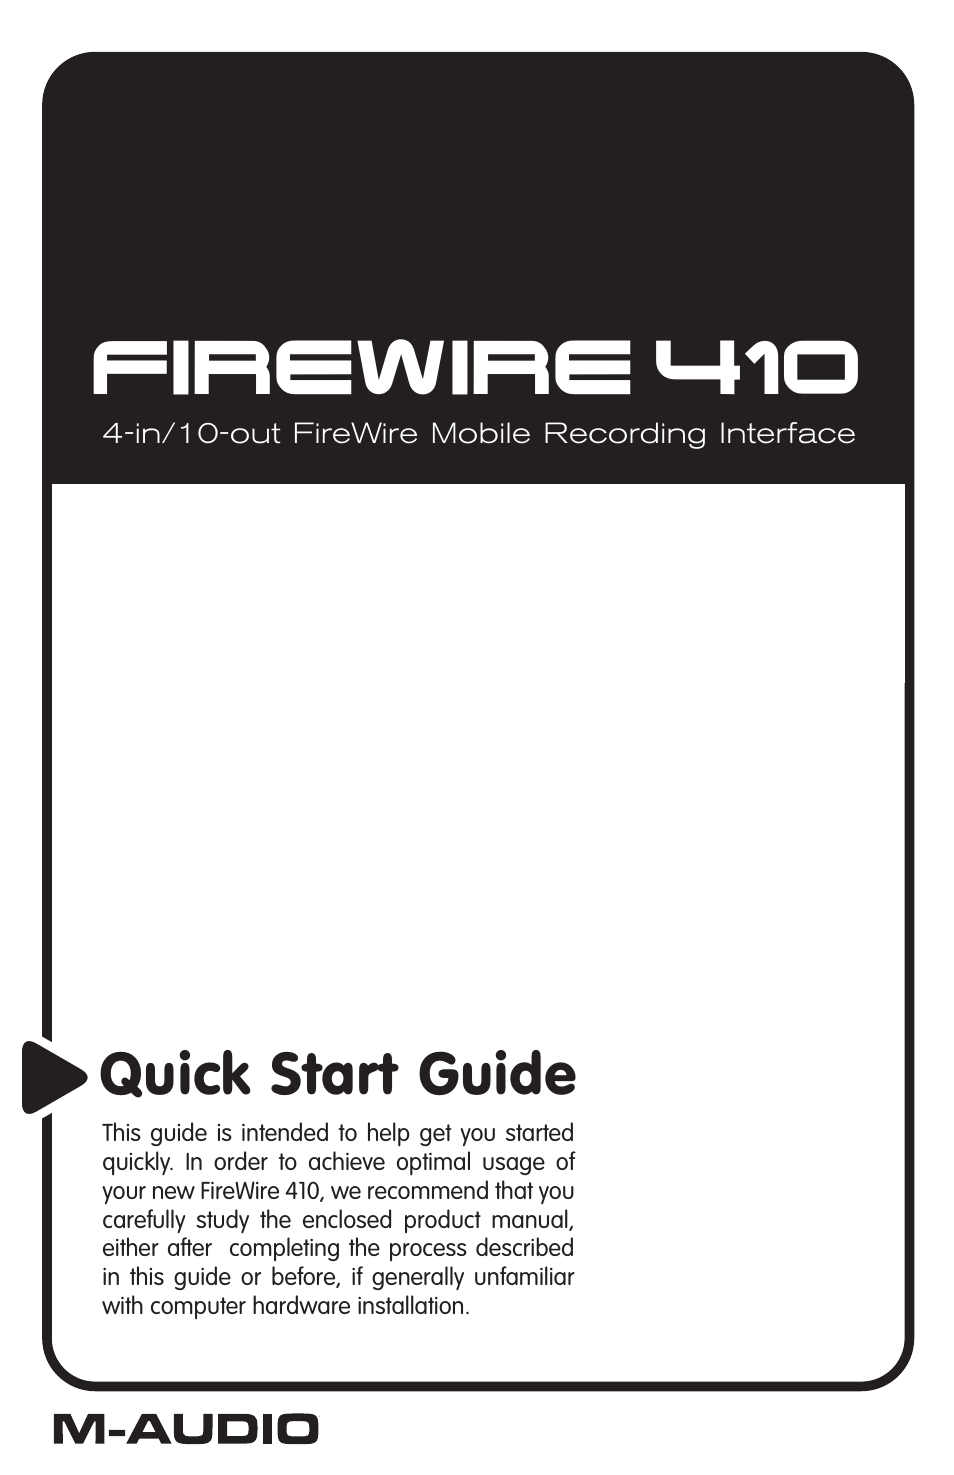 m audio firewire 410 user manual 19 pages. Black Bedroom Furniture Sets. Home Design Ideas